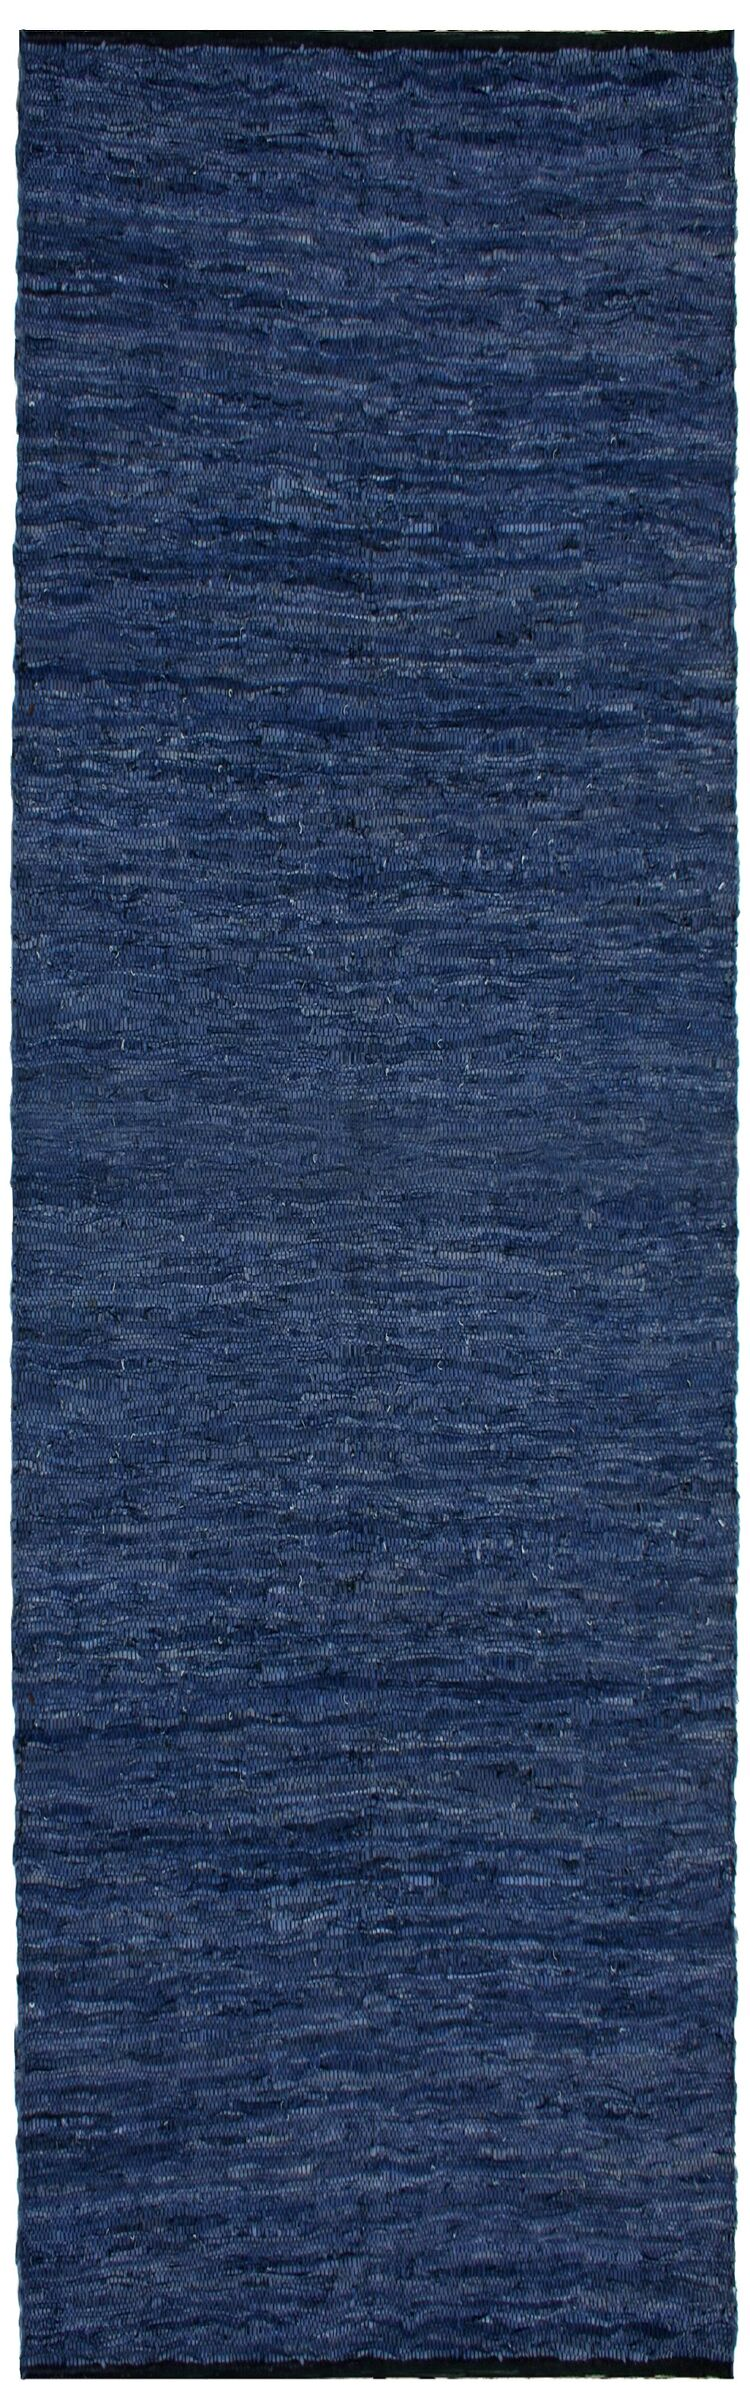 Sandford Chindi Hand Woven Cotton Blue Area Rug Rug Size: Runner 2'6